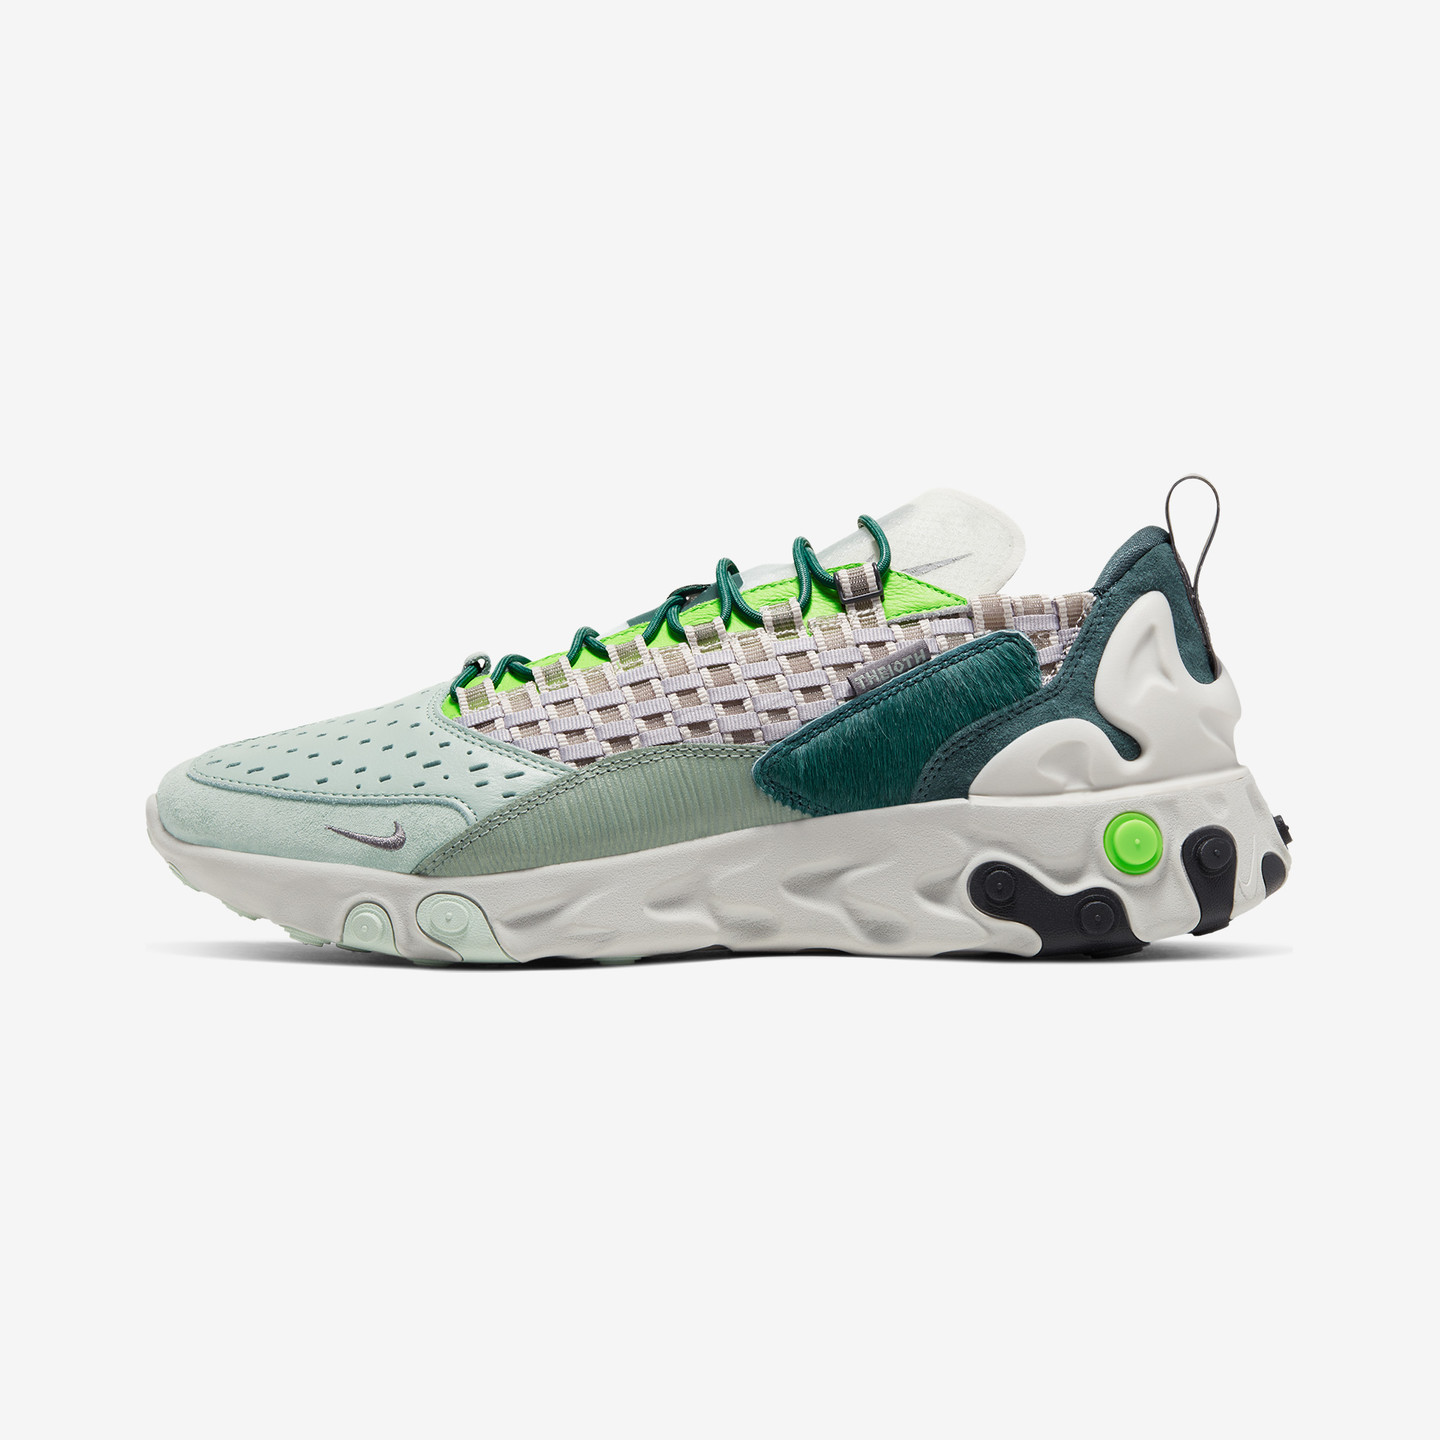 Nike React Sertu Faded Spruce / Gunsmoke / Bicoastal CT3442-300